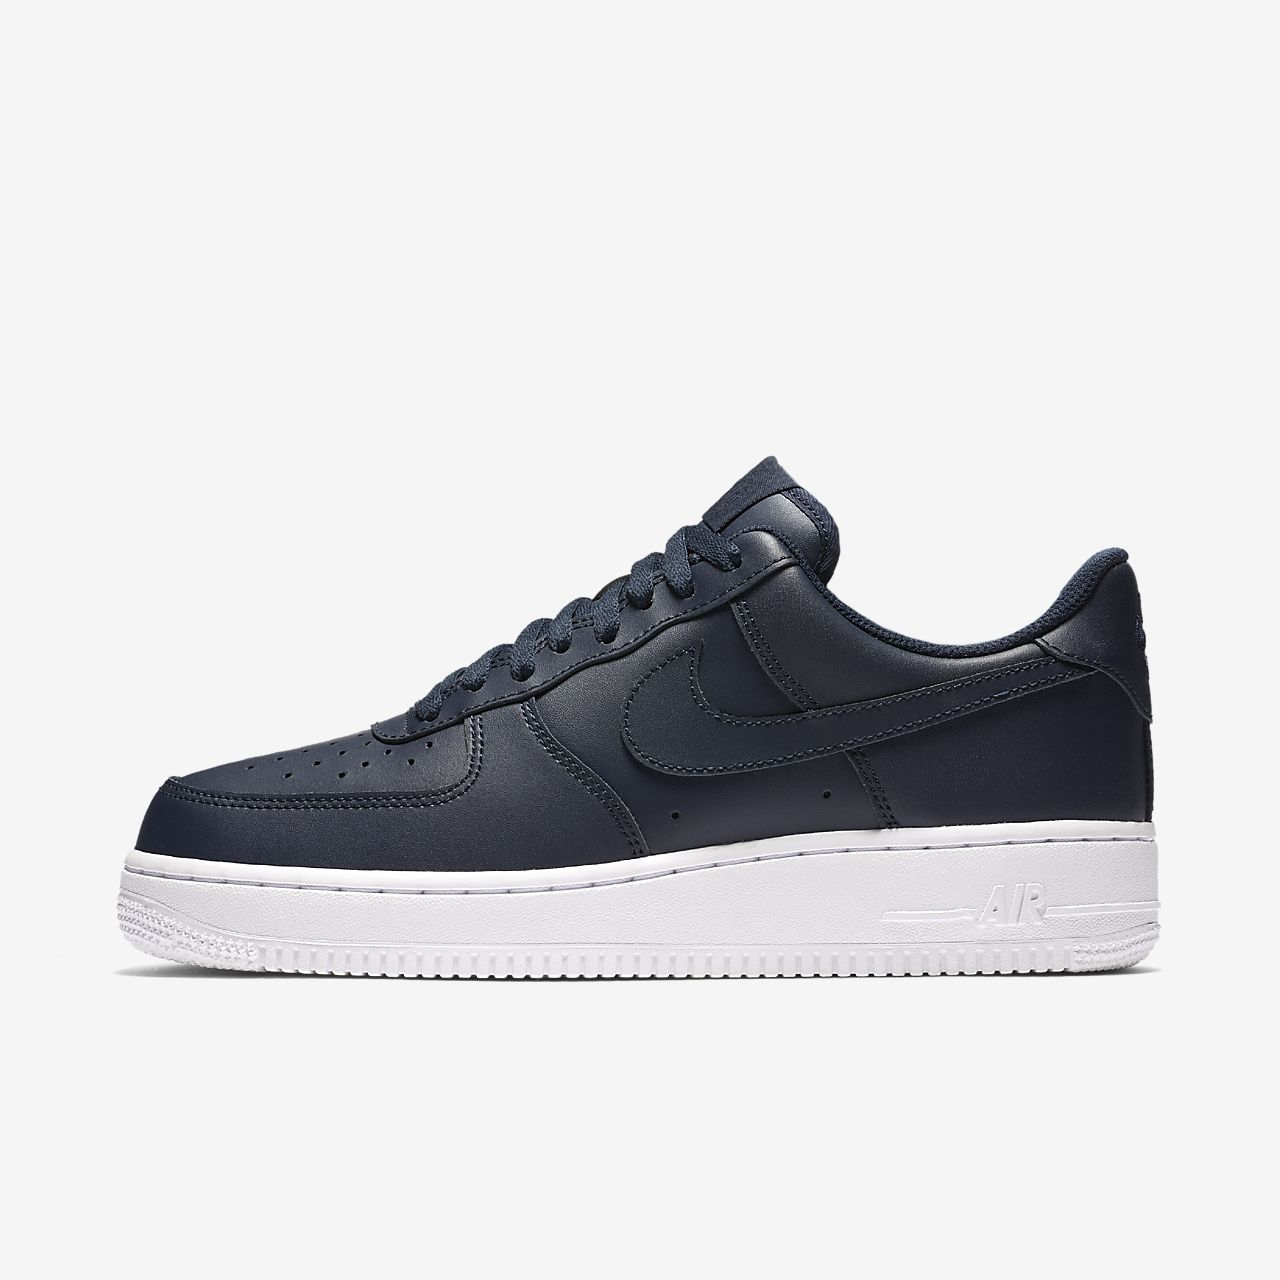 ... Chaussure Nike Air Force 1 07 pour Homme